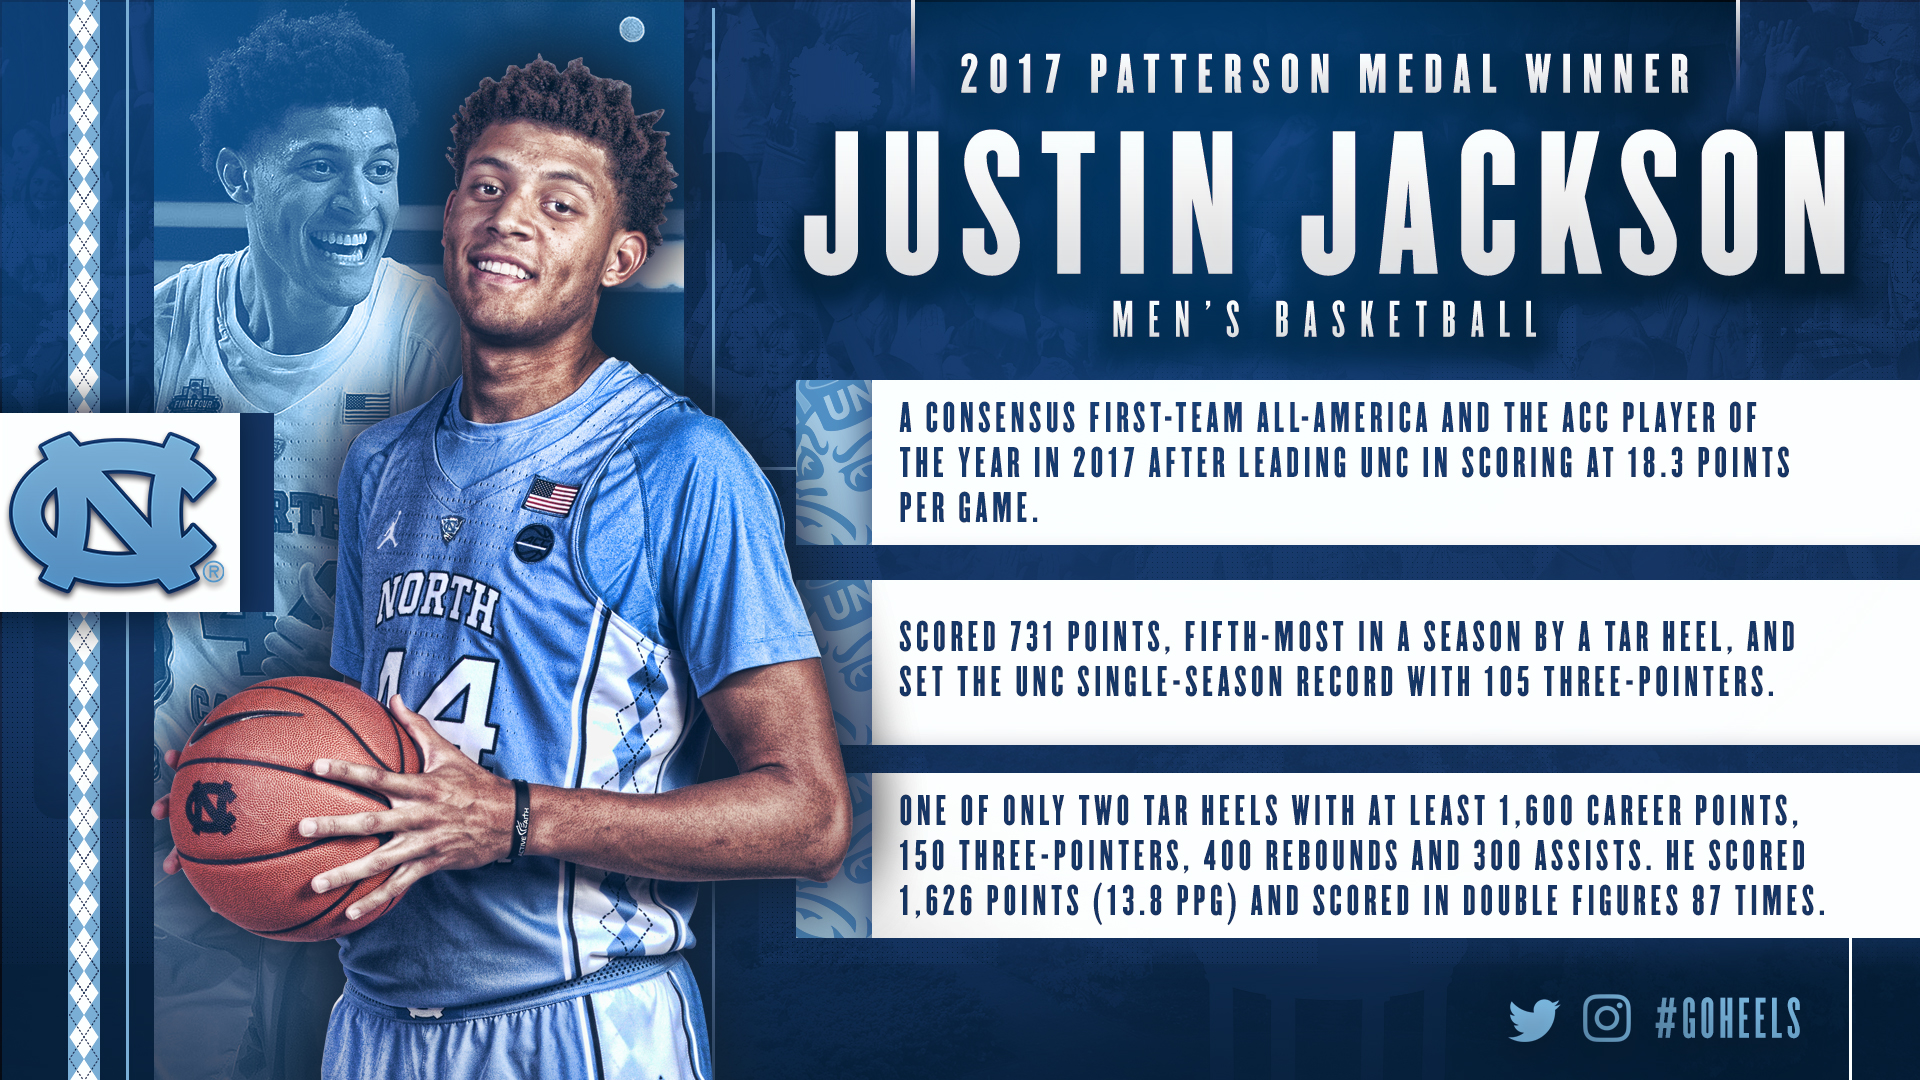 justin jackson - men's basketball - university of north carolina